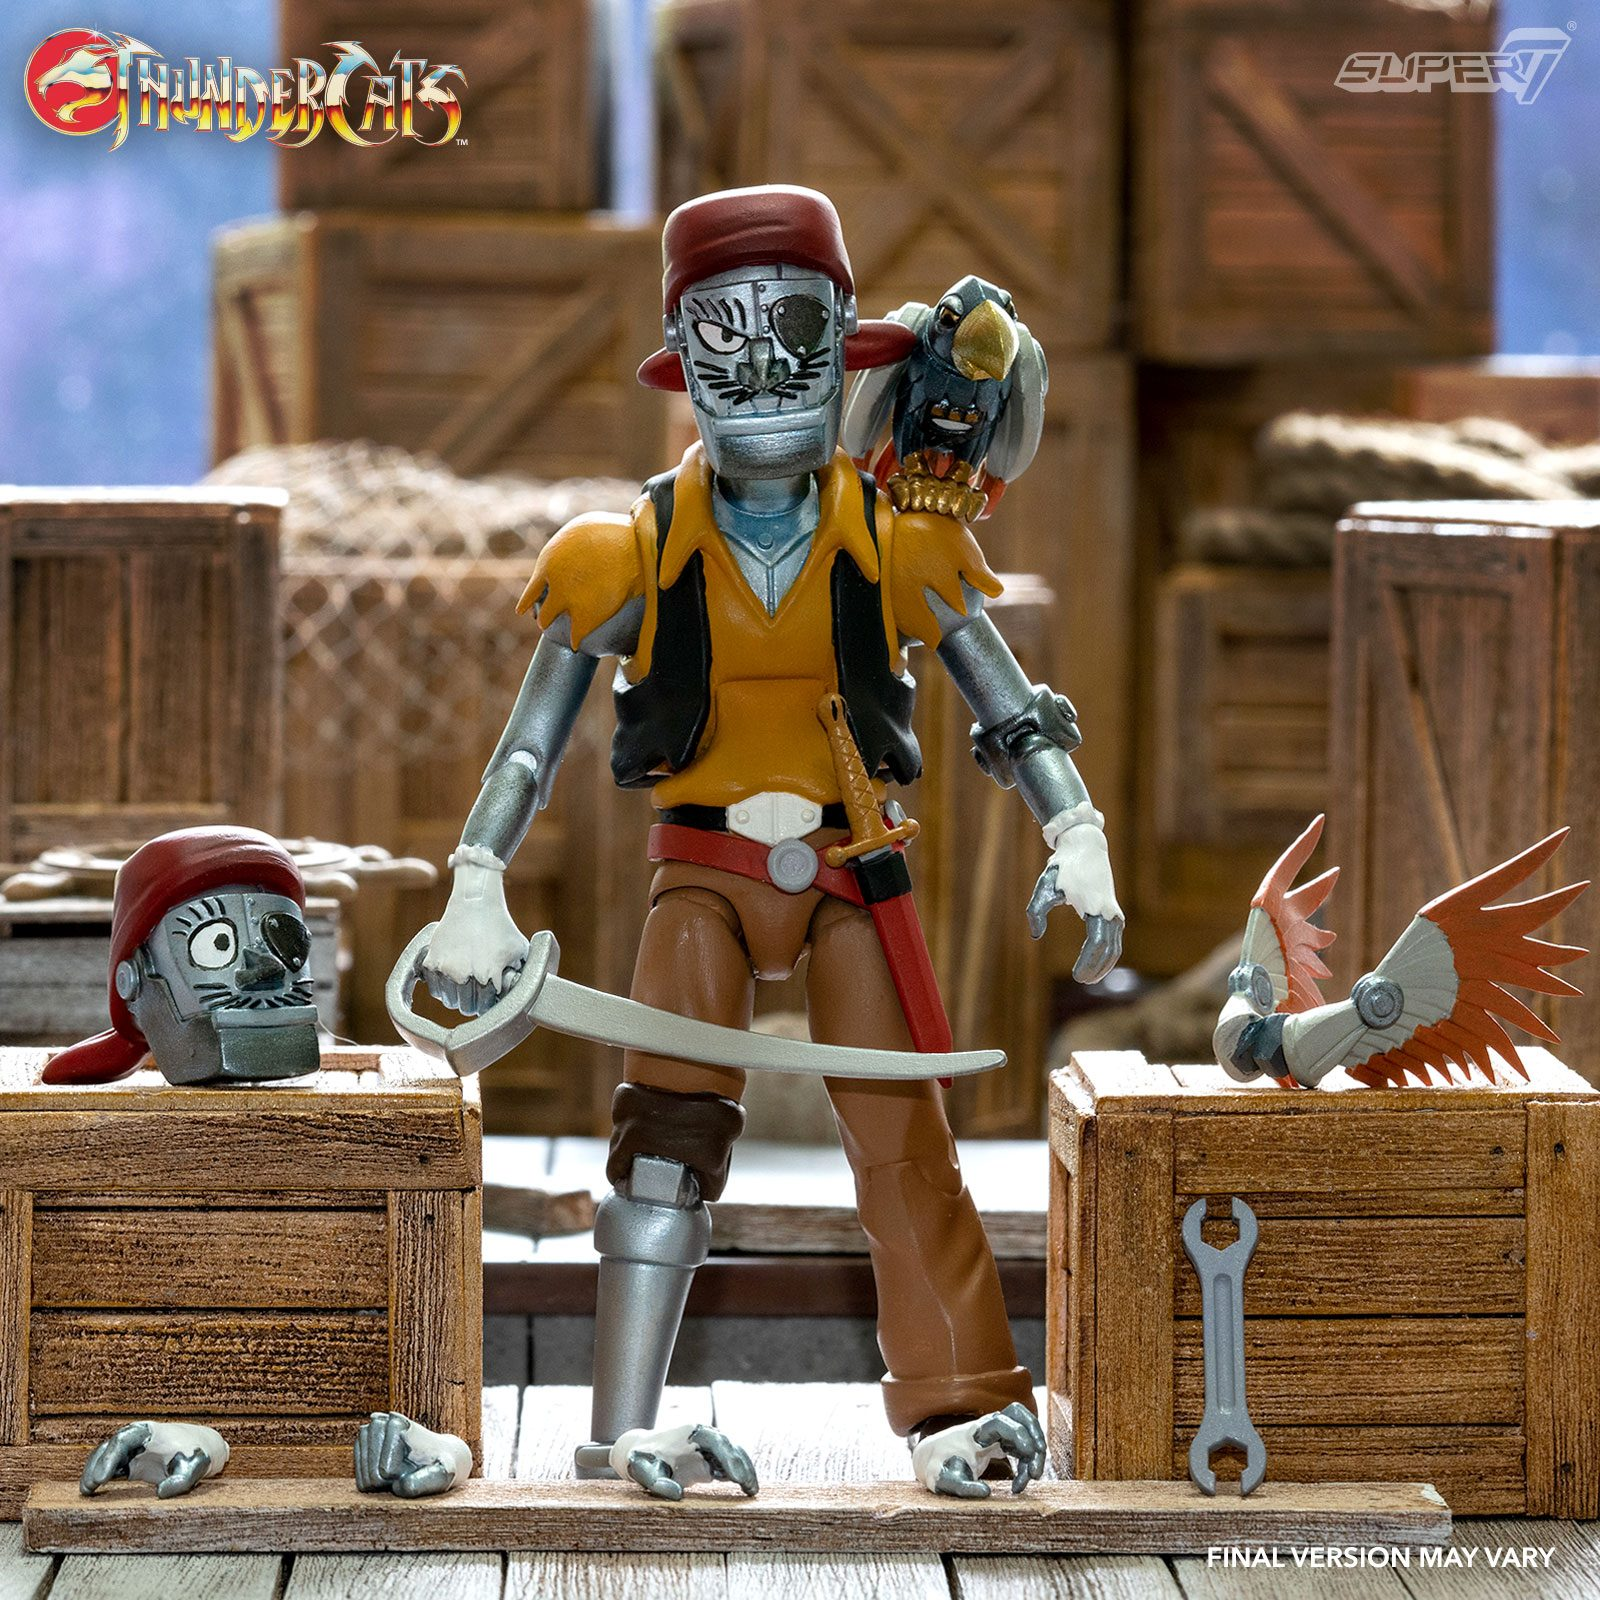 Thundercats Ultimates Action Figure Wave 3 Captain Cracker the Robotic Pirate Scoundrel 18 cm